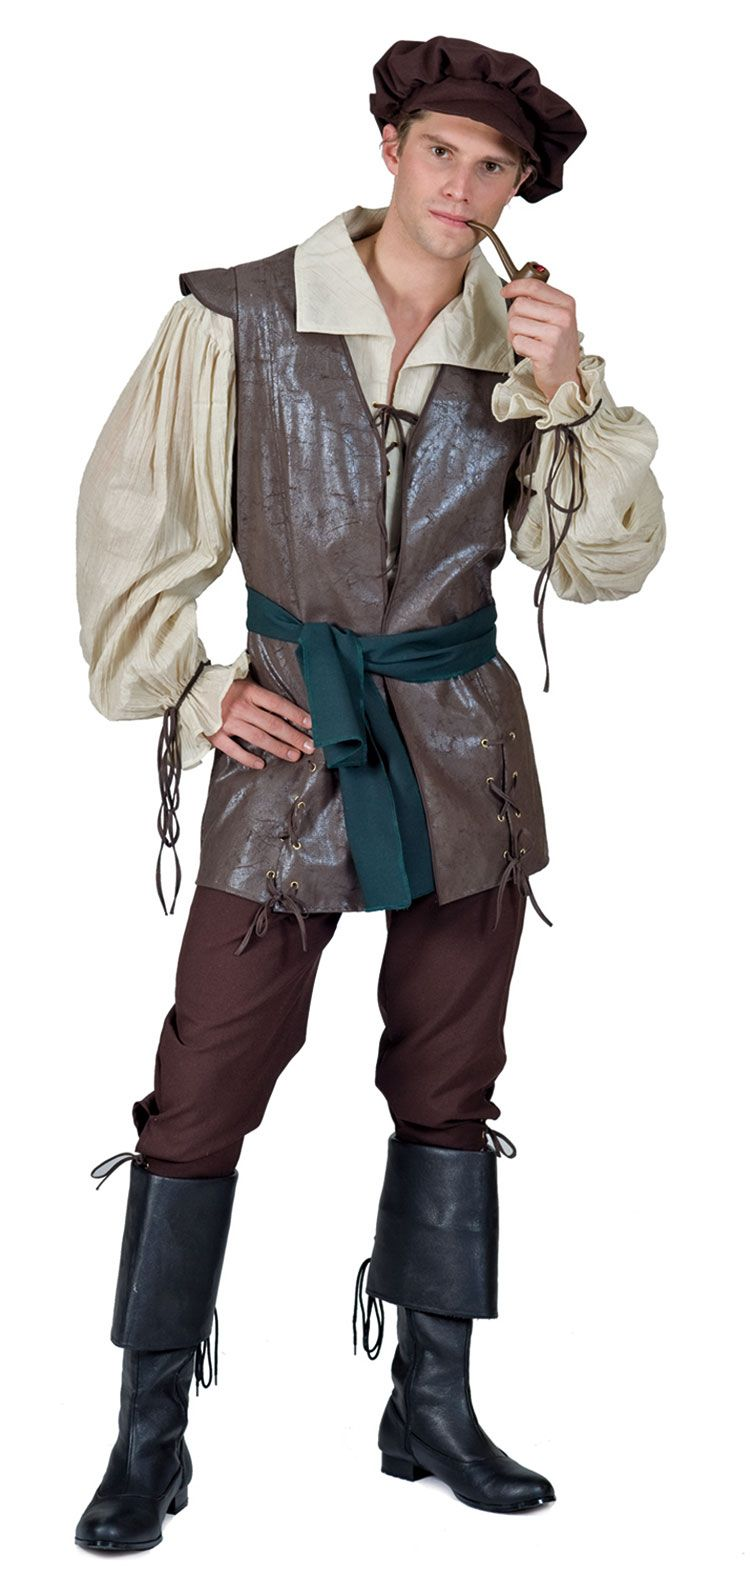 Medieval Peasant Adult Costume Medieval Costumes Costuming Ideas